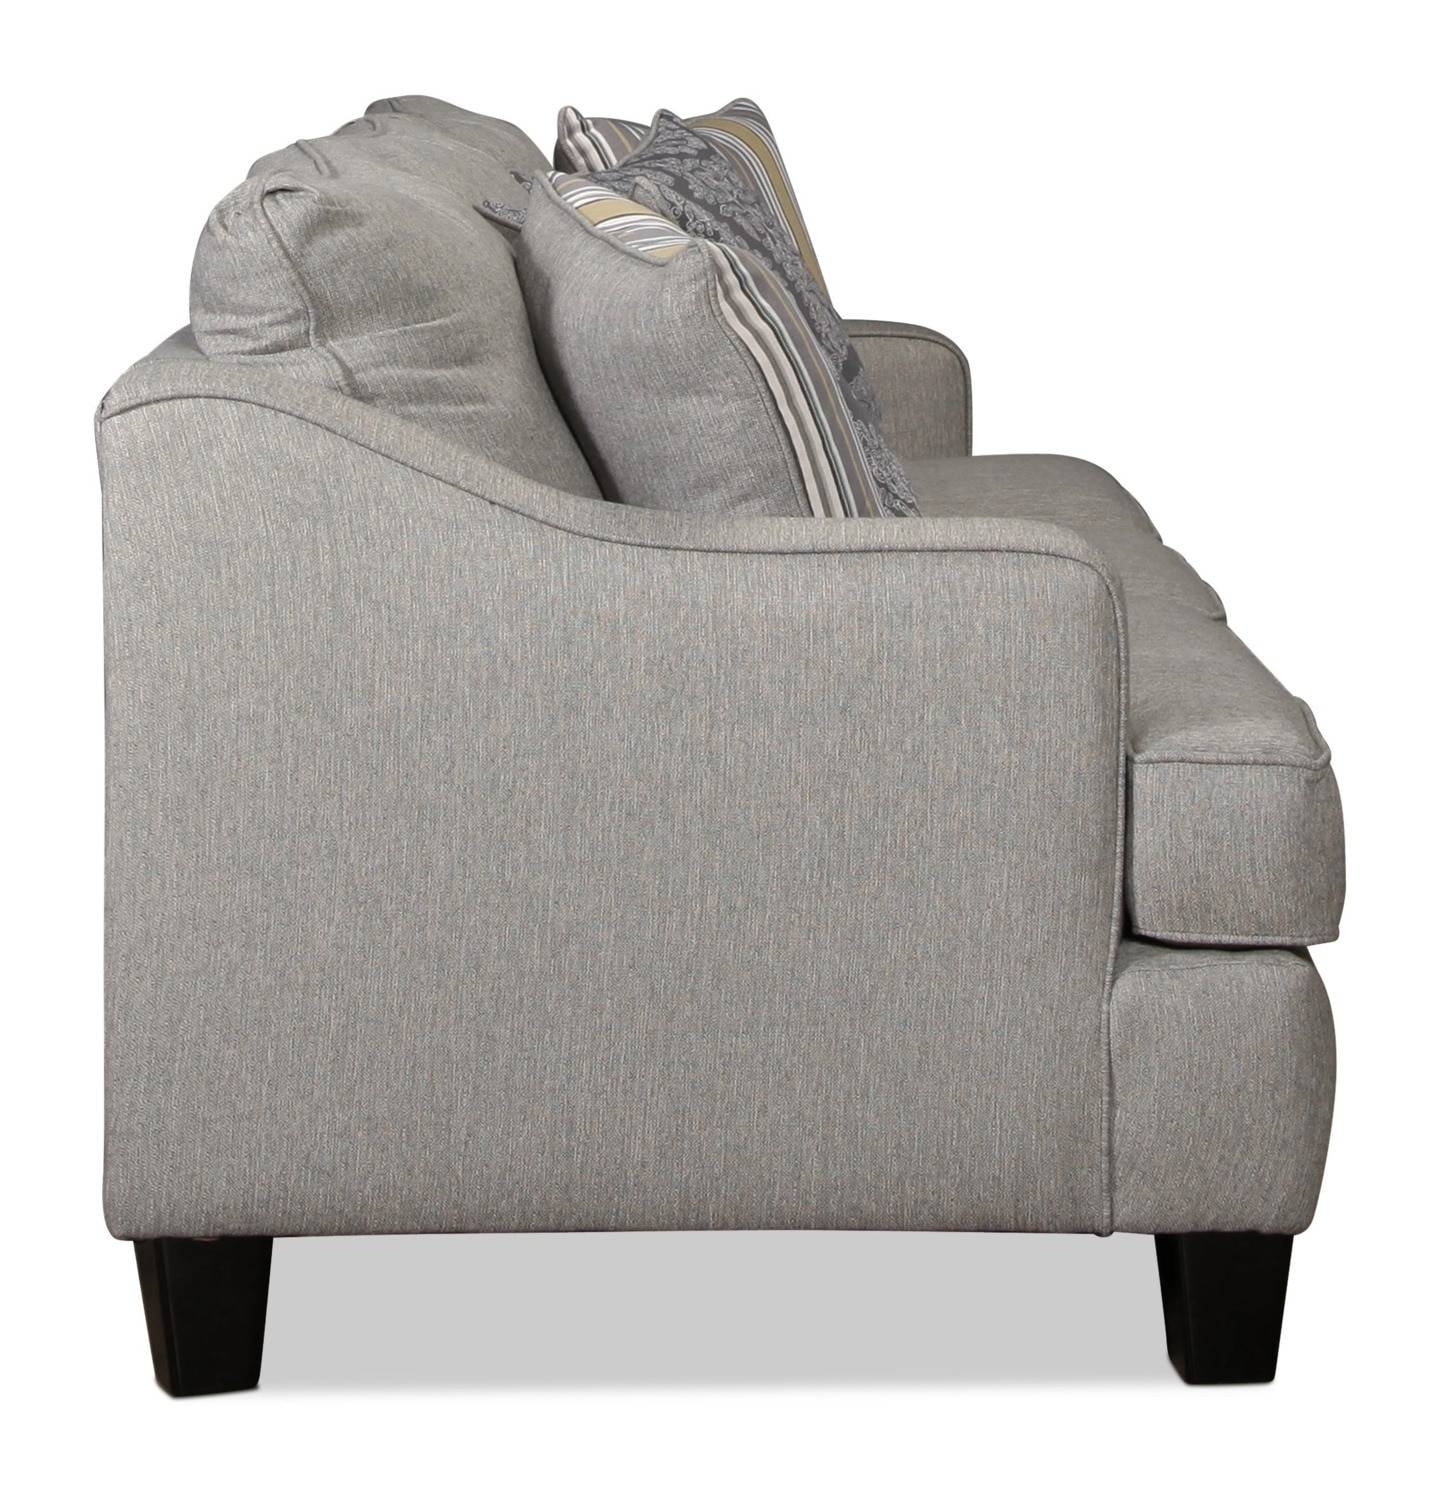 Wilmington Queen Sleeper Sofa - Platinum | Levin Furniture intended for Loveseat Twin Sleeper Sofas (Image 29 of 30)